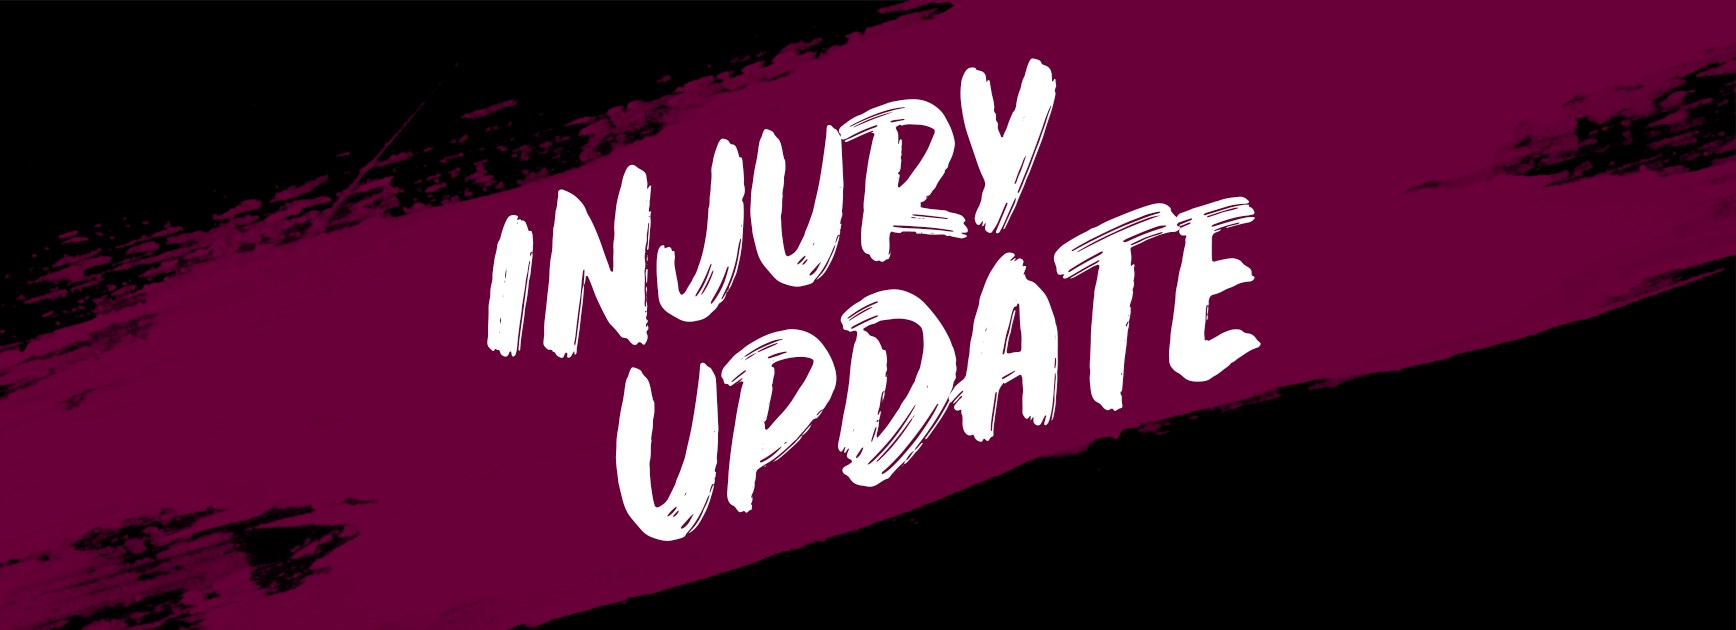 Injury Update - Round 3